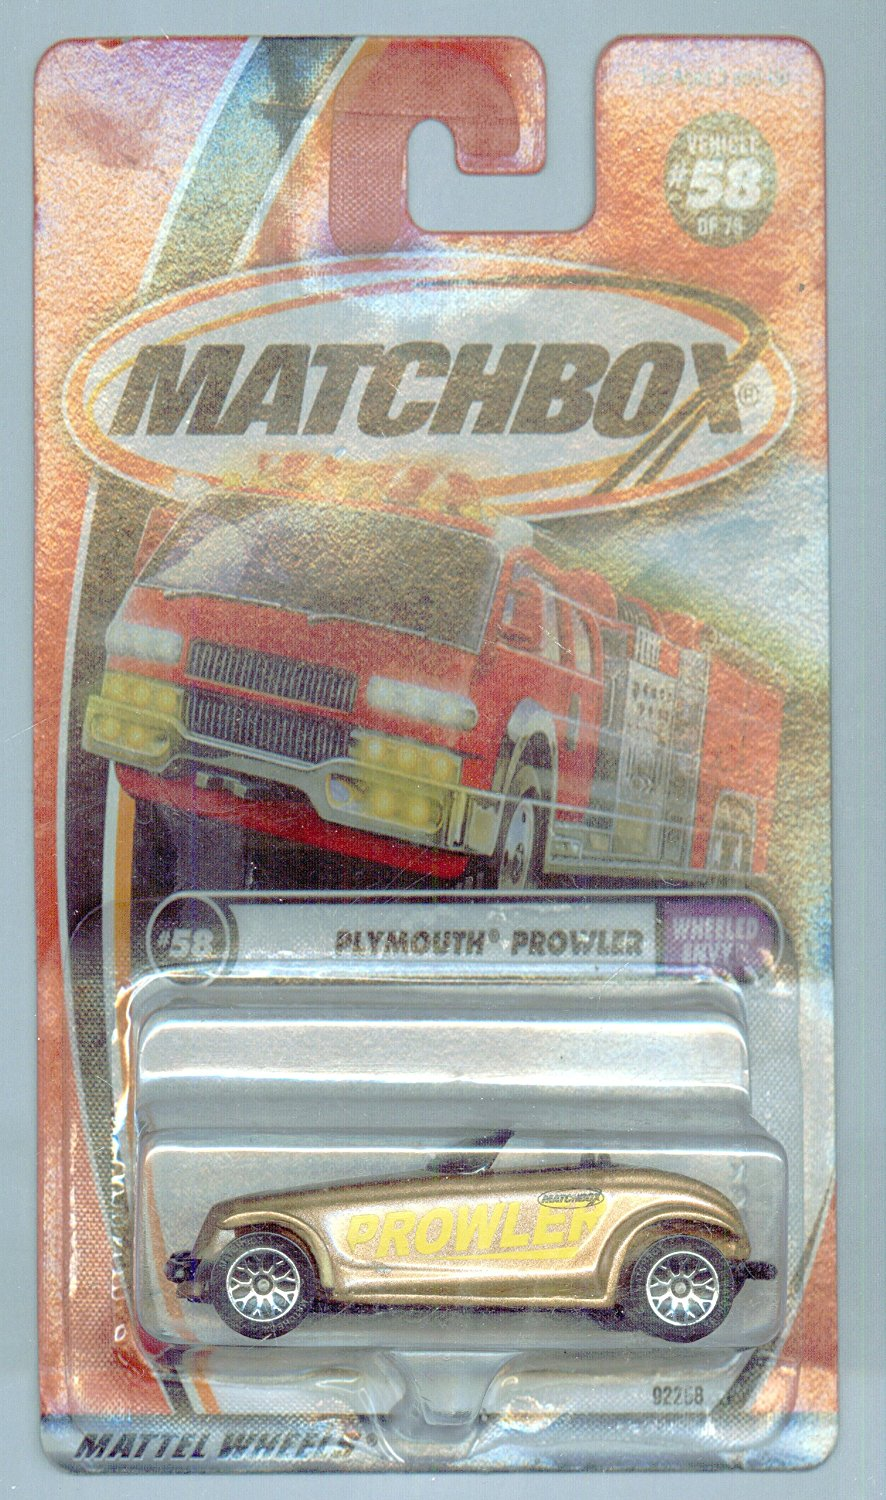 2001-58 75 Wheeled Envy Plymouth Prowler 1:64 Scale, Matchbox By Matchbox by